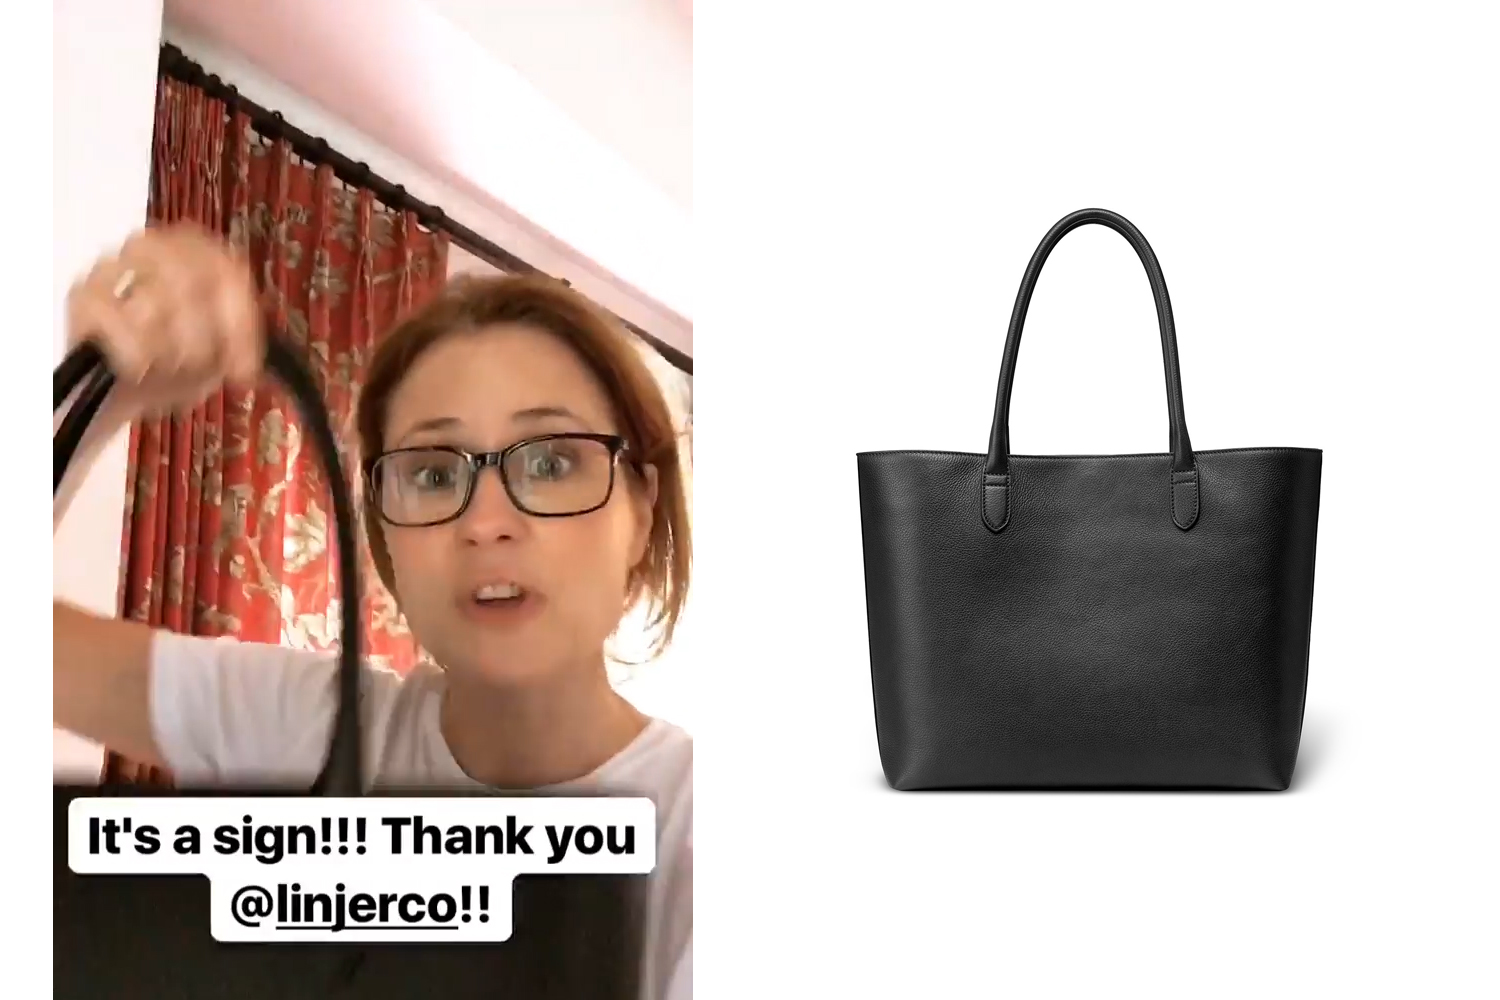 Jenna Fischer shares an Instagram story about receiving a Soft Tote she ordered from Linjer ($359).